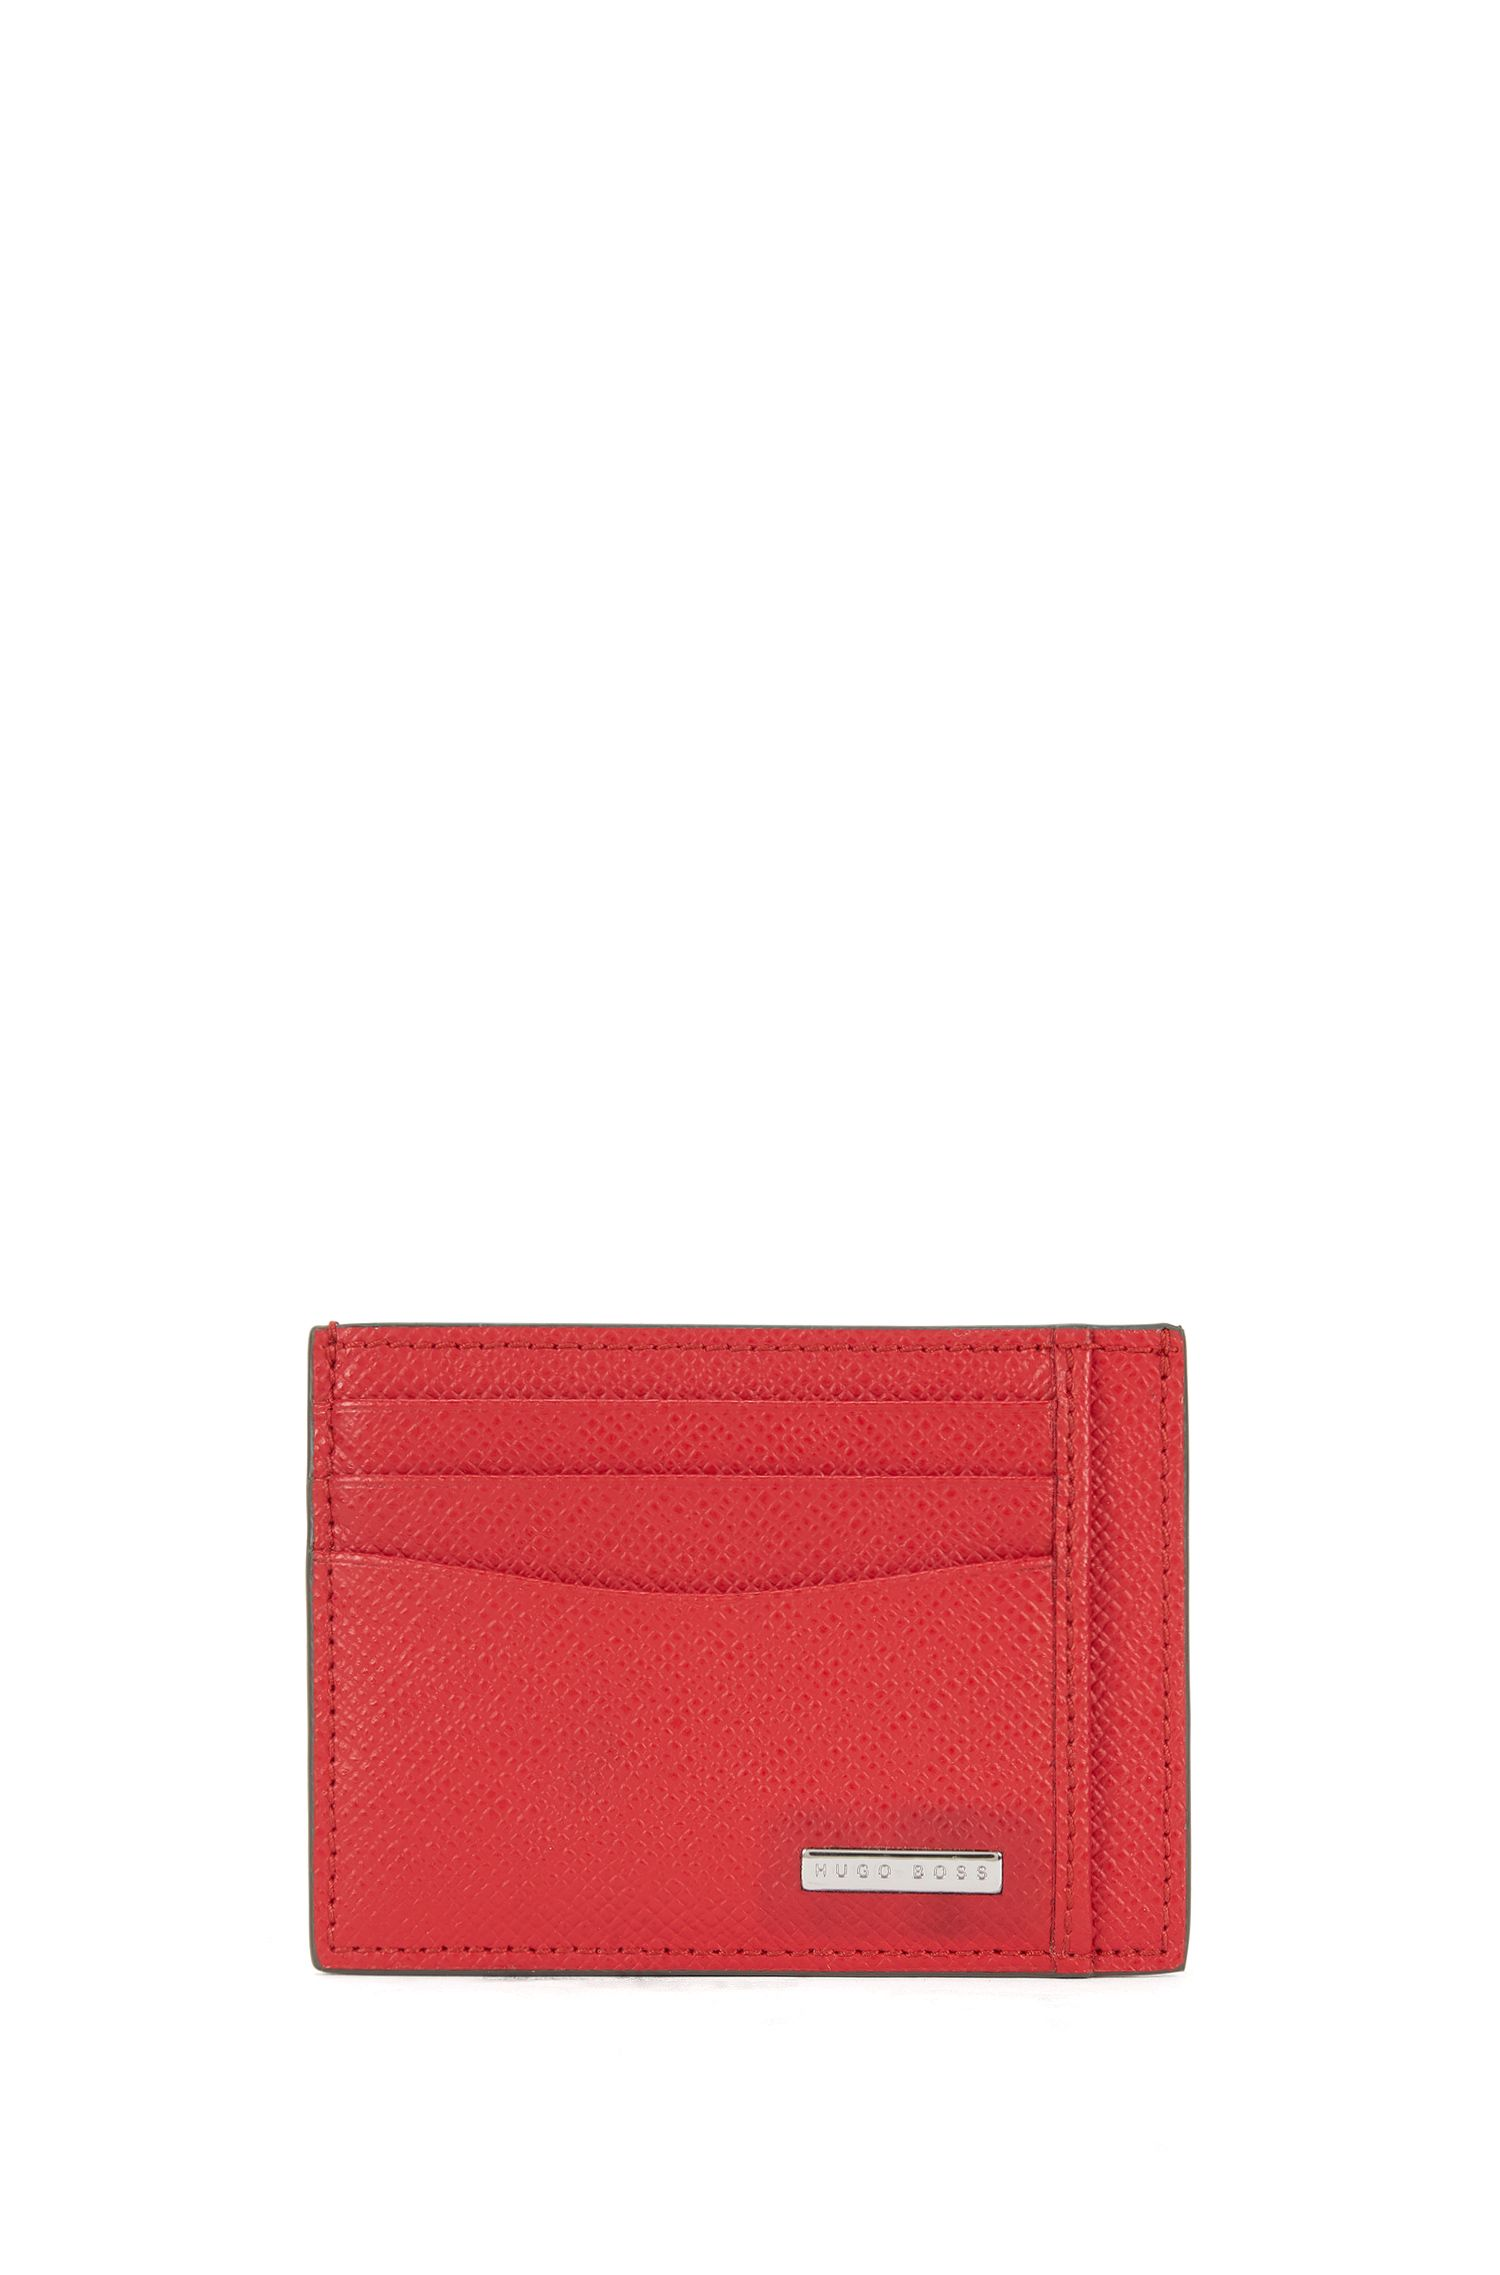 Palmellato-Embossed Leather Card Holder | Signature S Card N, Red